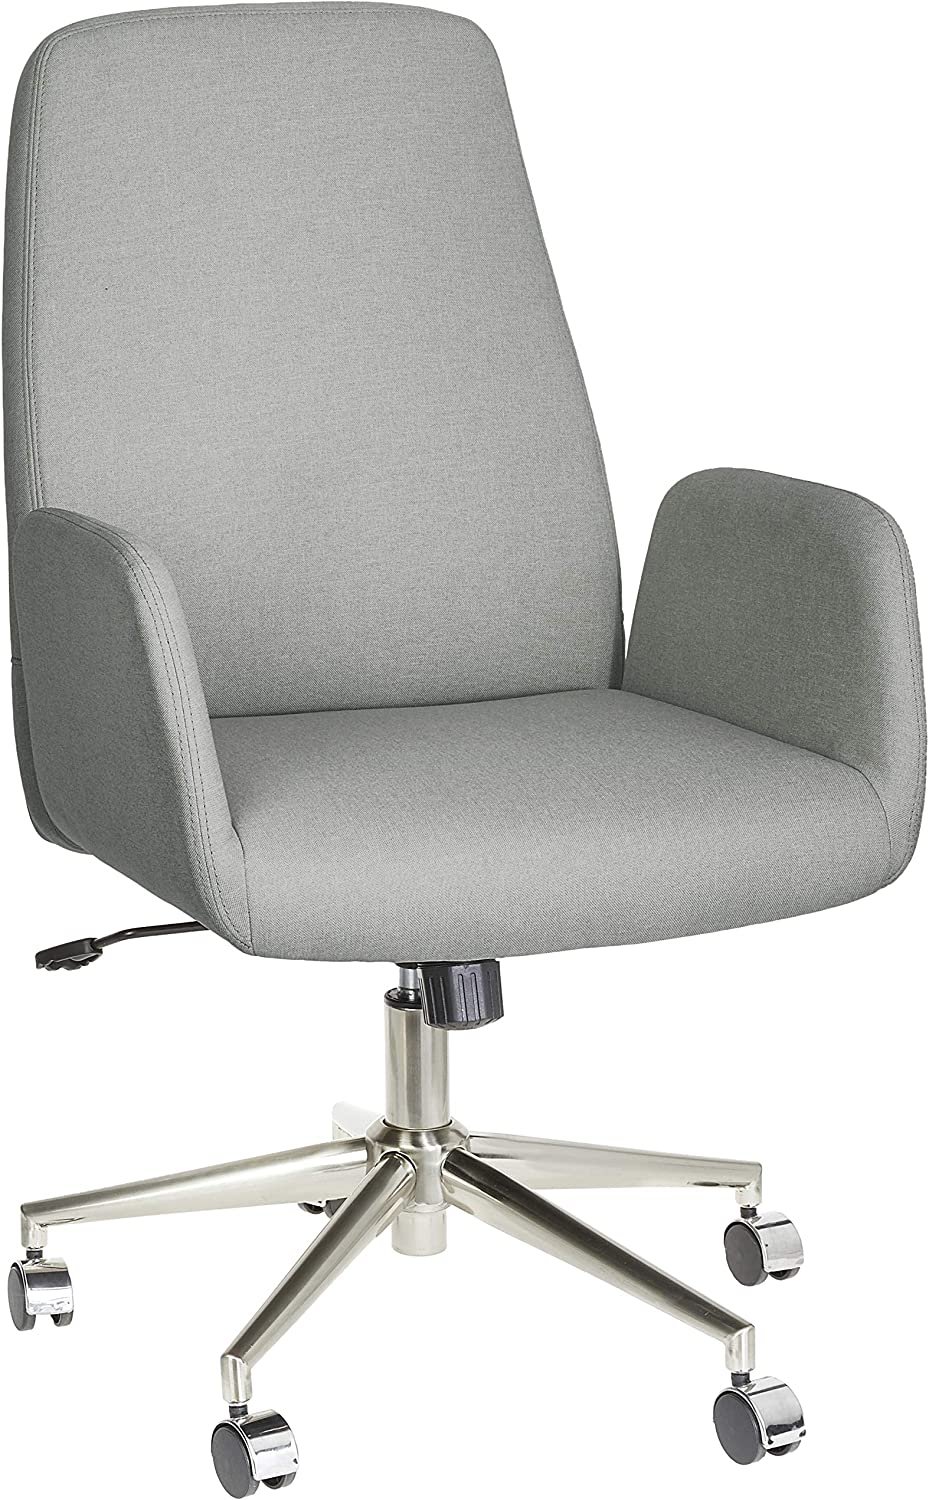 Amazon Brand – Rivet High-Back Adjustable Swivel Office Chair with Chrome Metal Base, 17.9